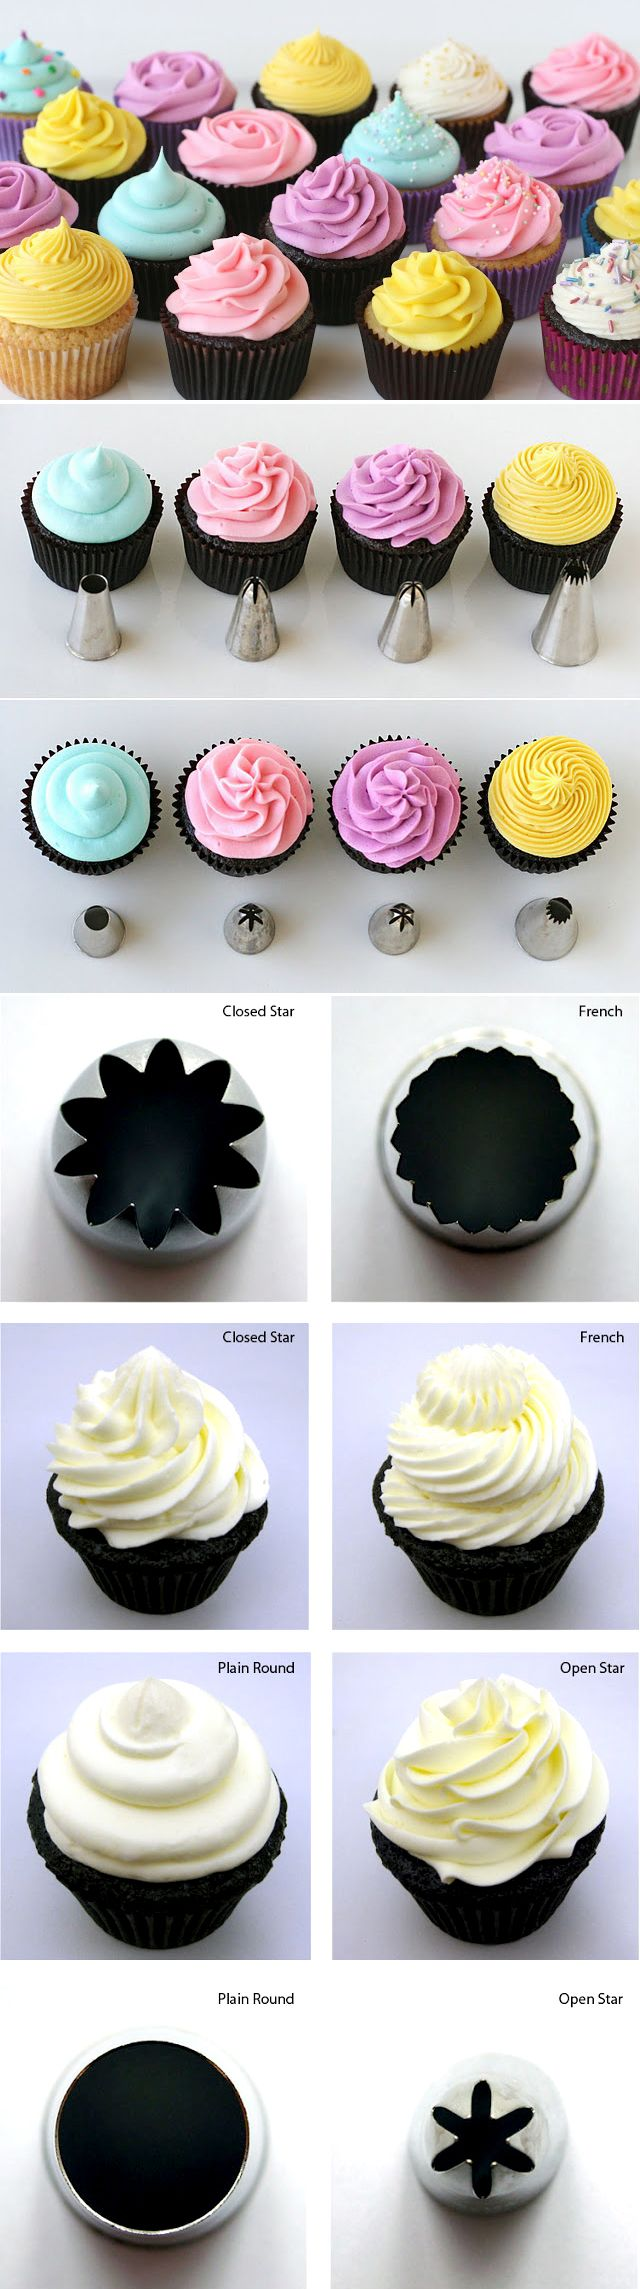 How to Frost Cupcakes- the ultimate tutorial!